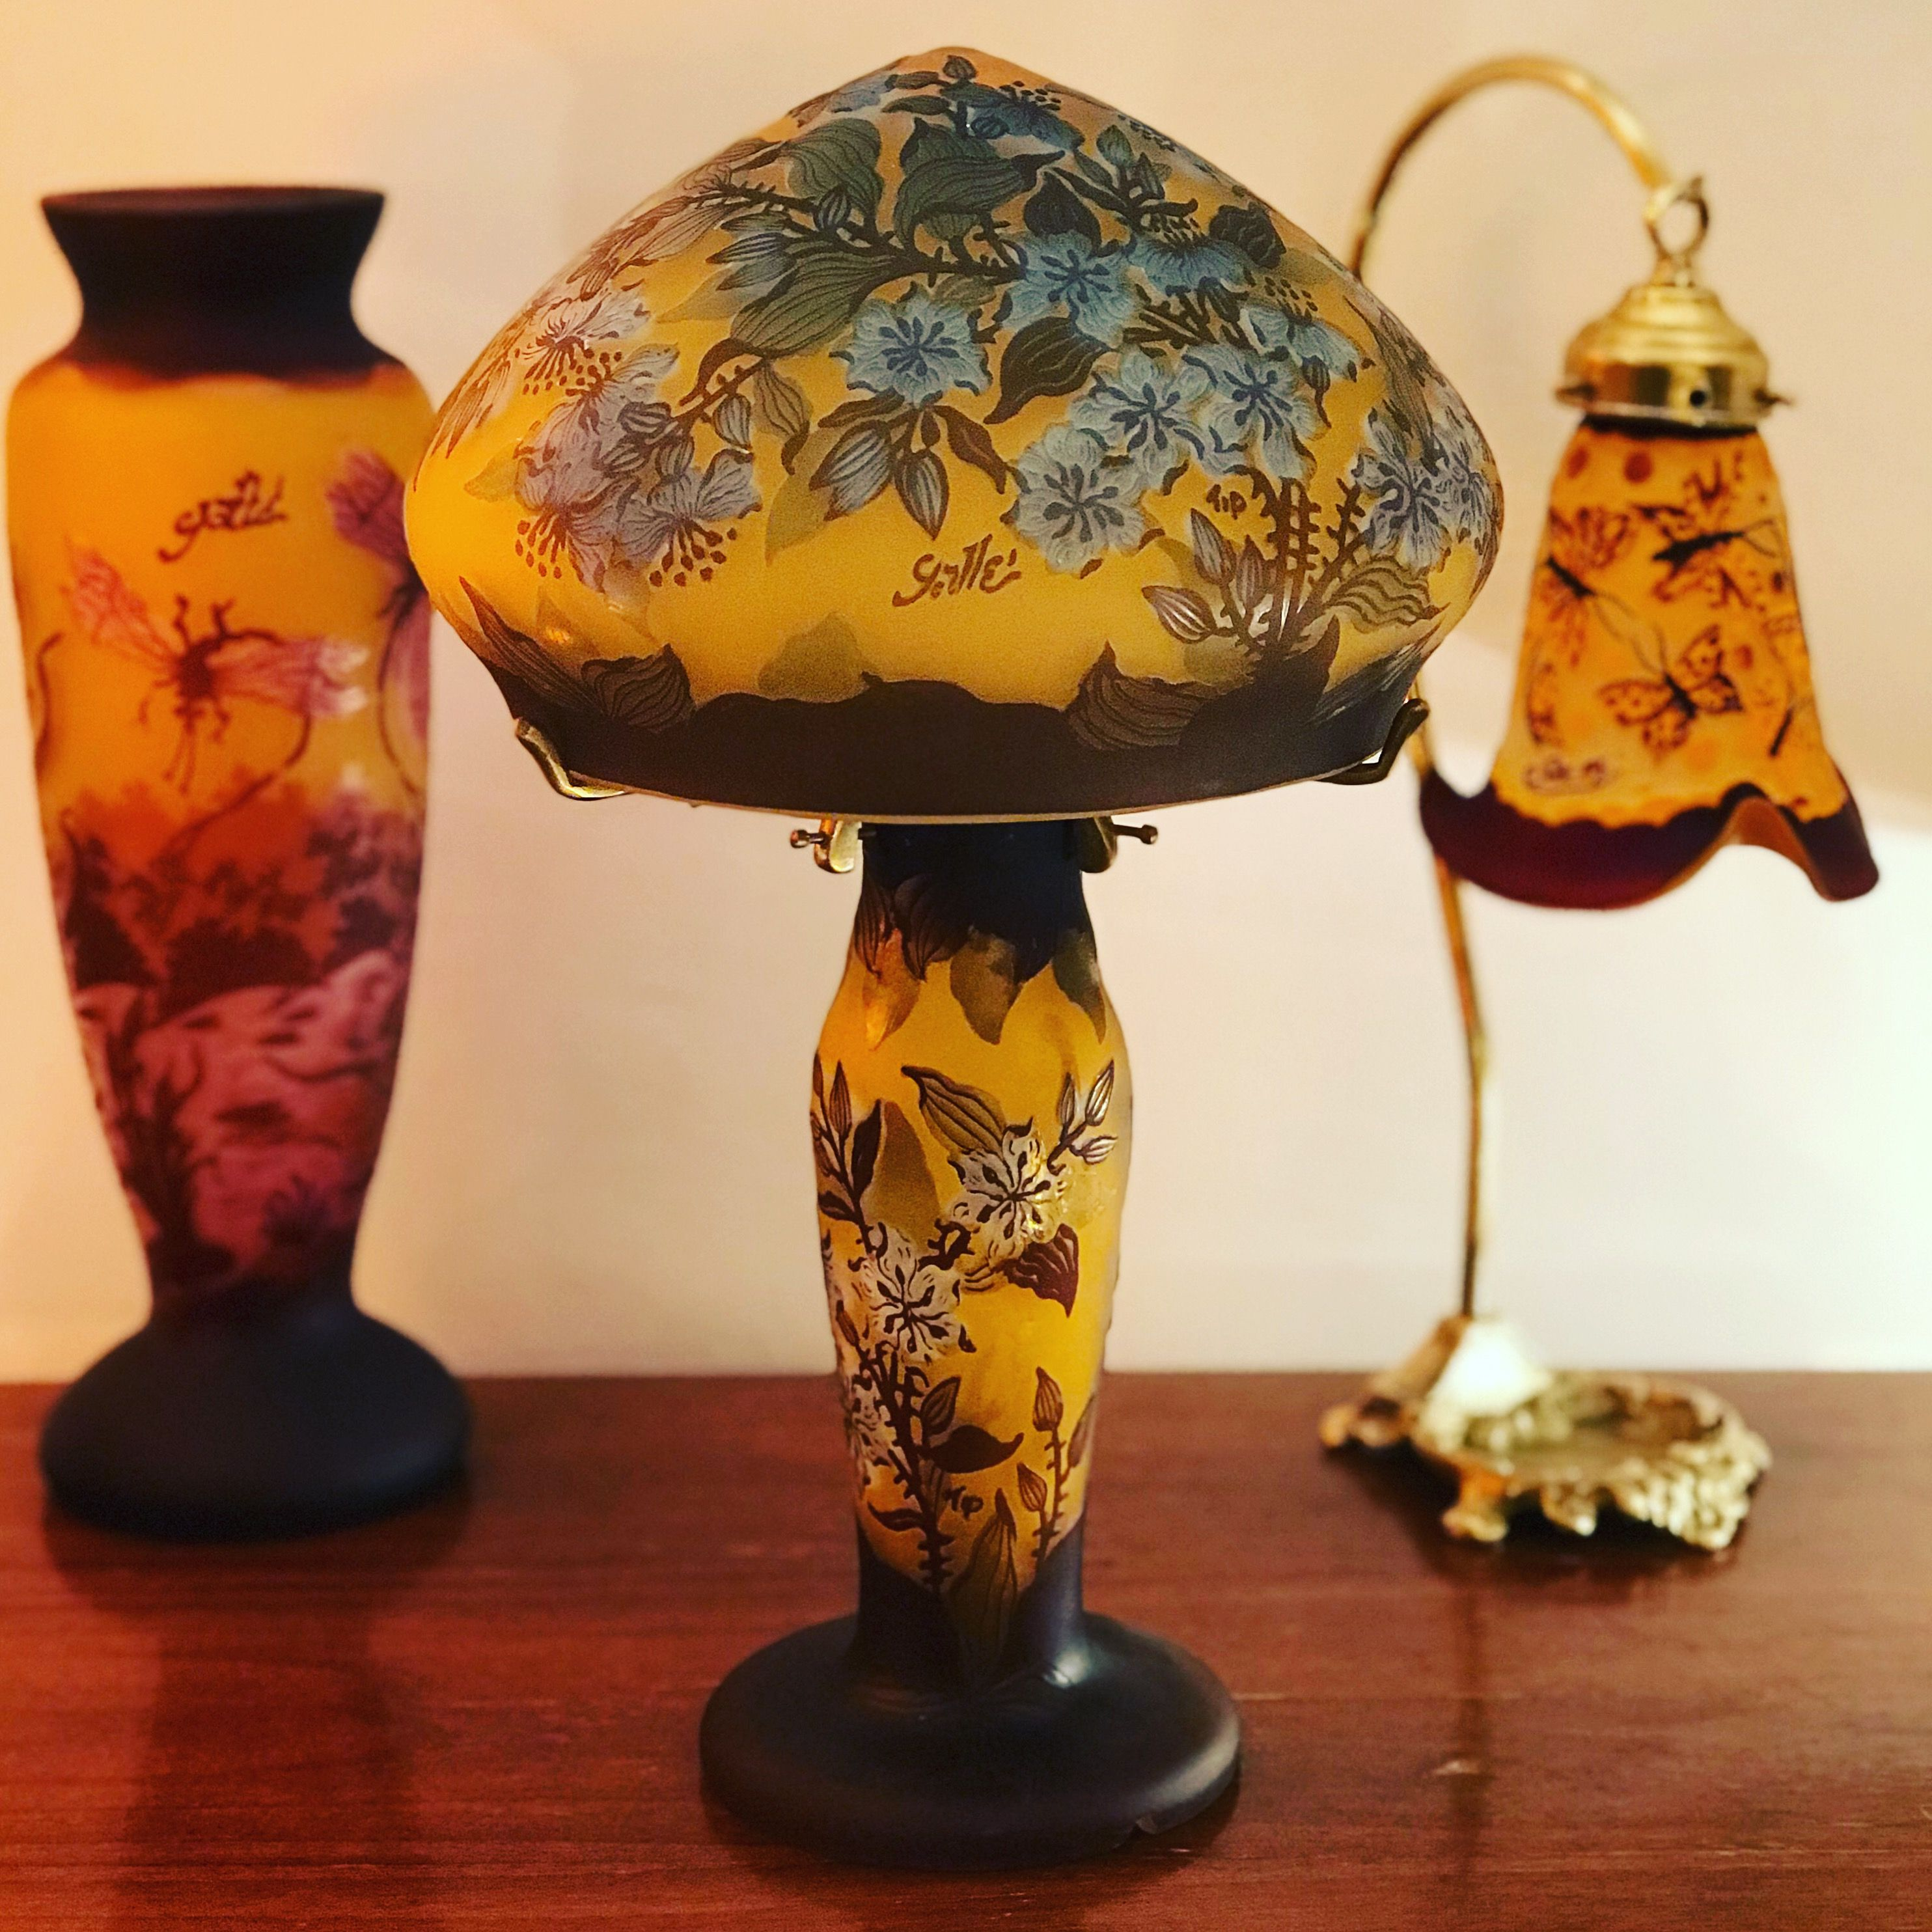 Emile Galle Lampshade Reproduction From Romania